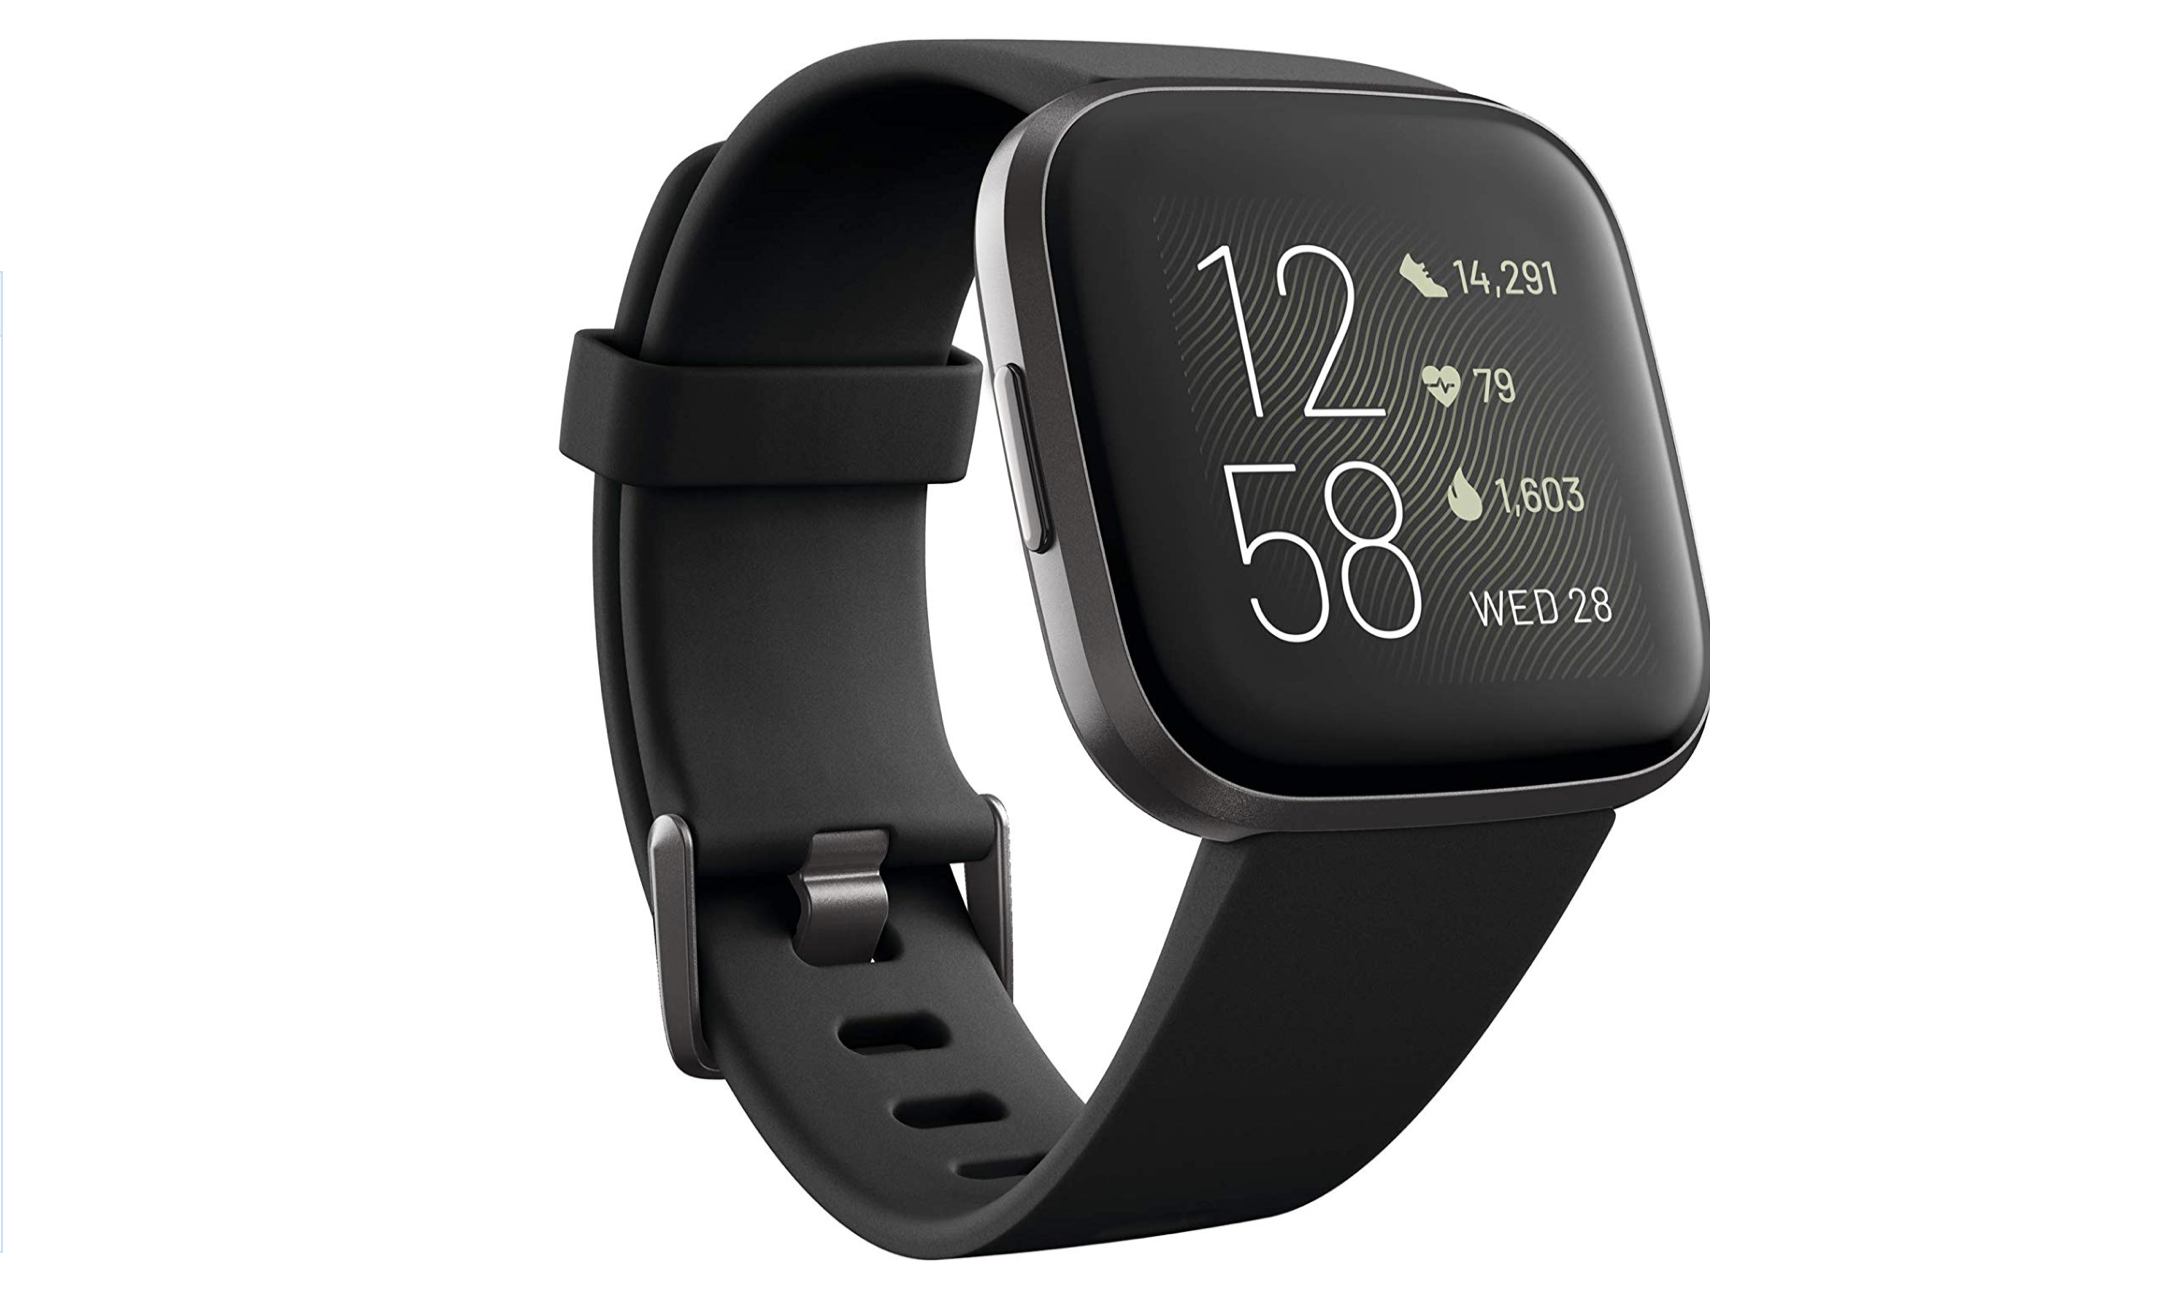 Get the new Fitbit Versa 2 smartwatch for $130, the lowest it's ever been ($70 off)